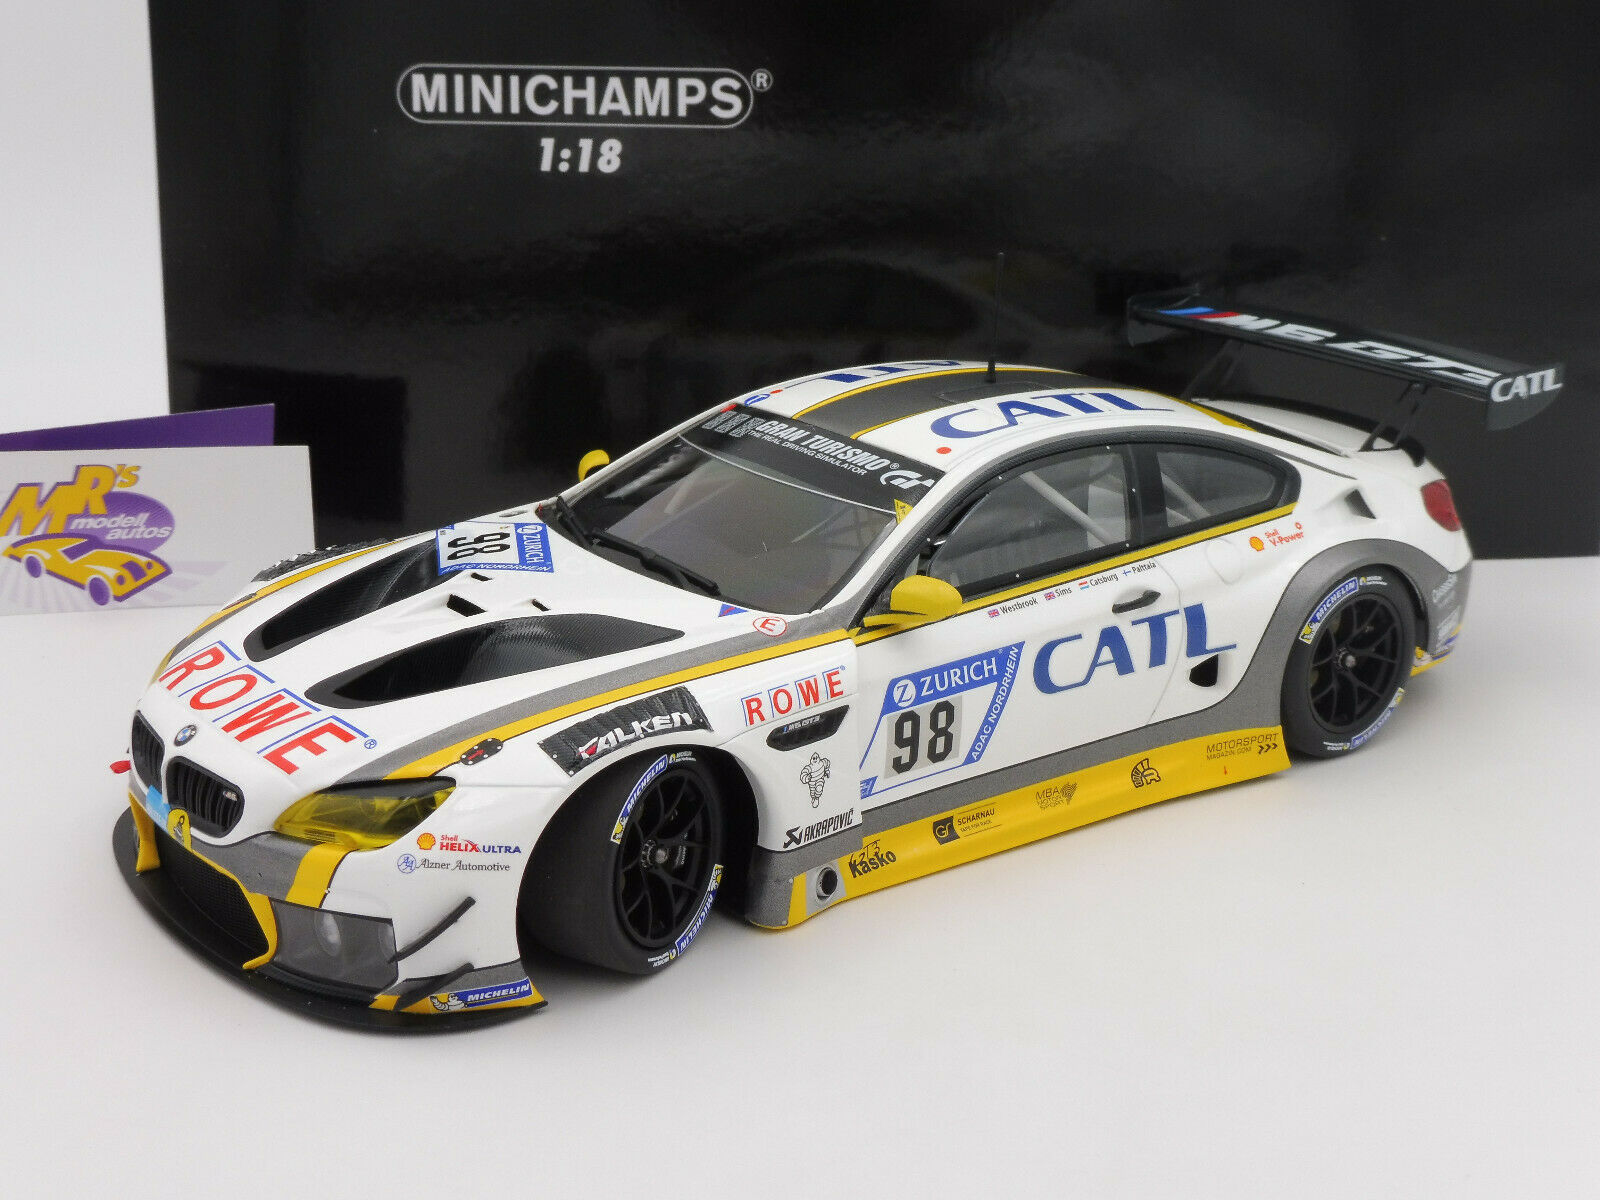 MINICHAMPS 155172698   BMW m6 gt3 no. 98  24 H Nurburgbague 2017 Rowe Racing 1 18  100% livraison gratuite